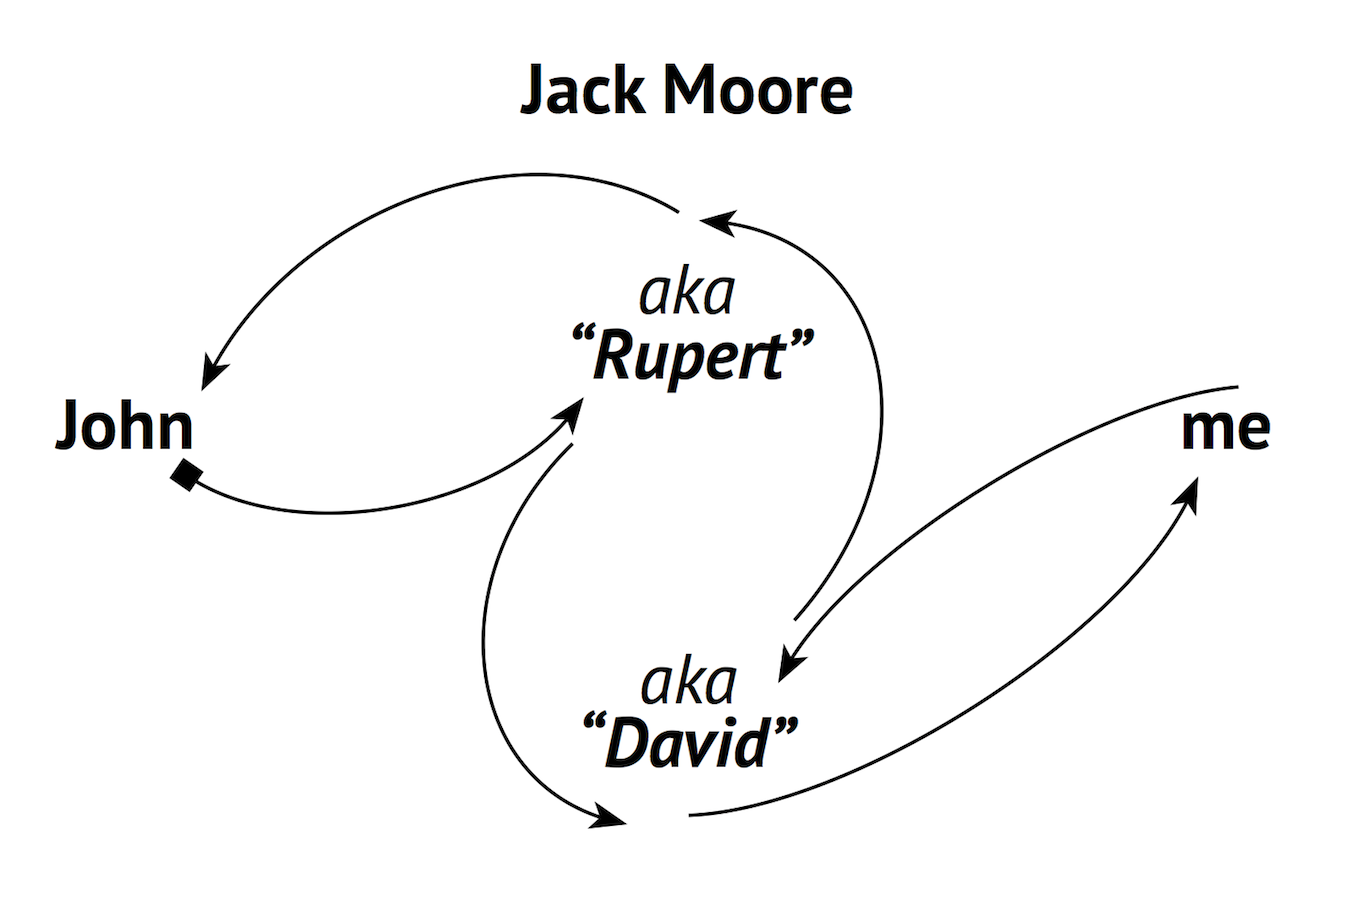 Moore operated under two aliases simultaneously as the work product got sent around